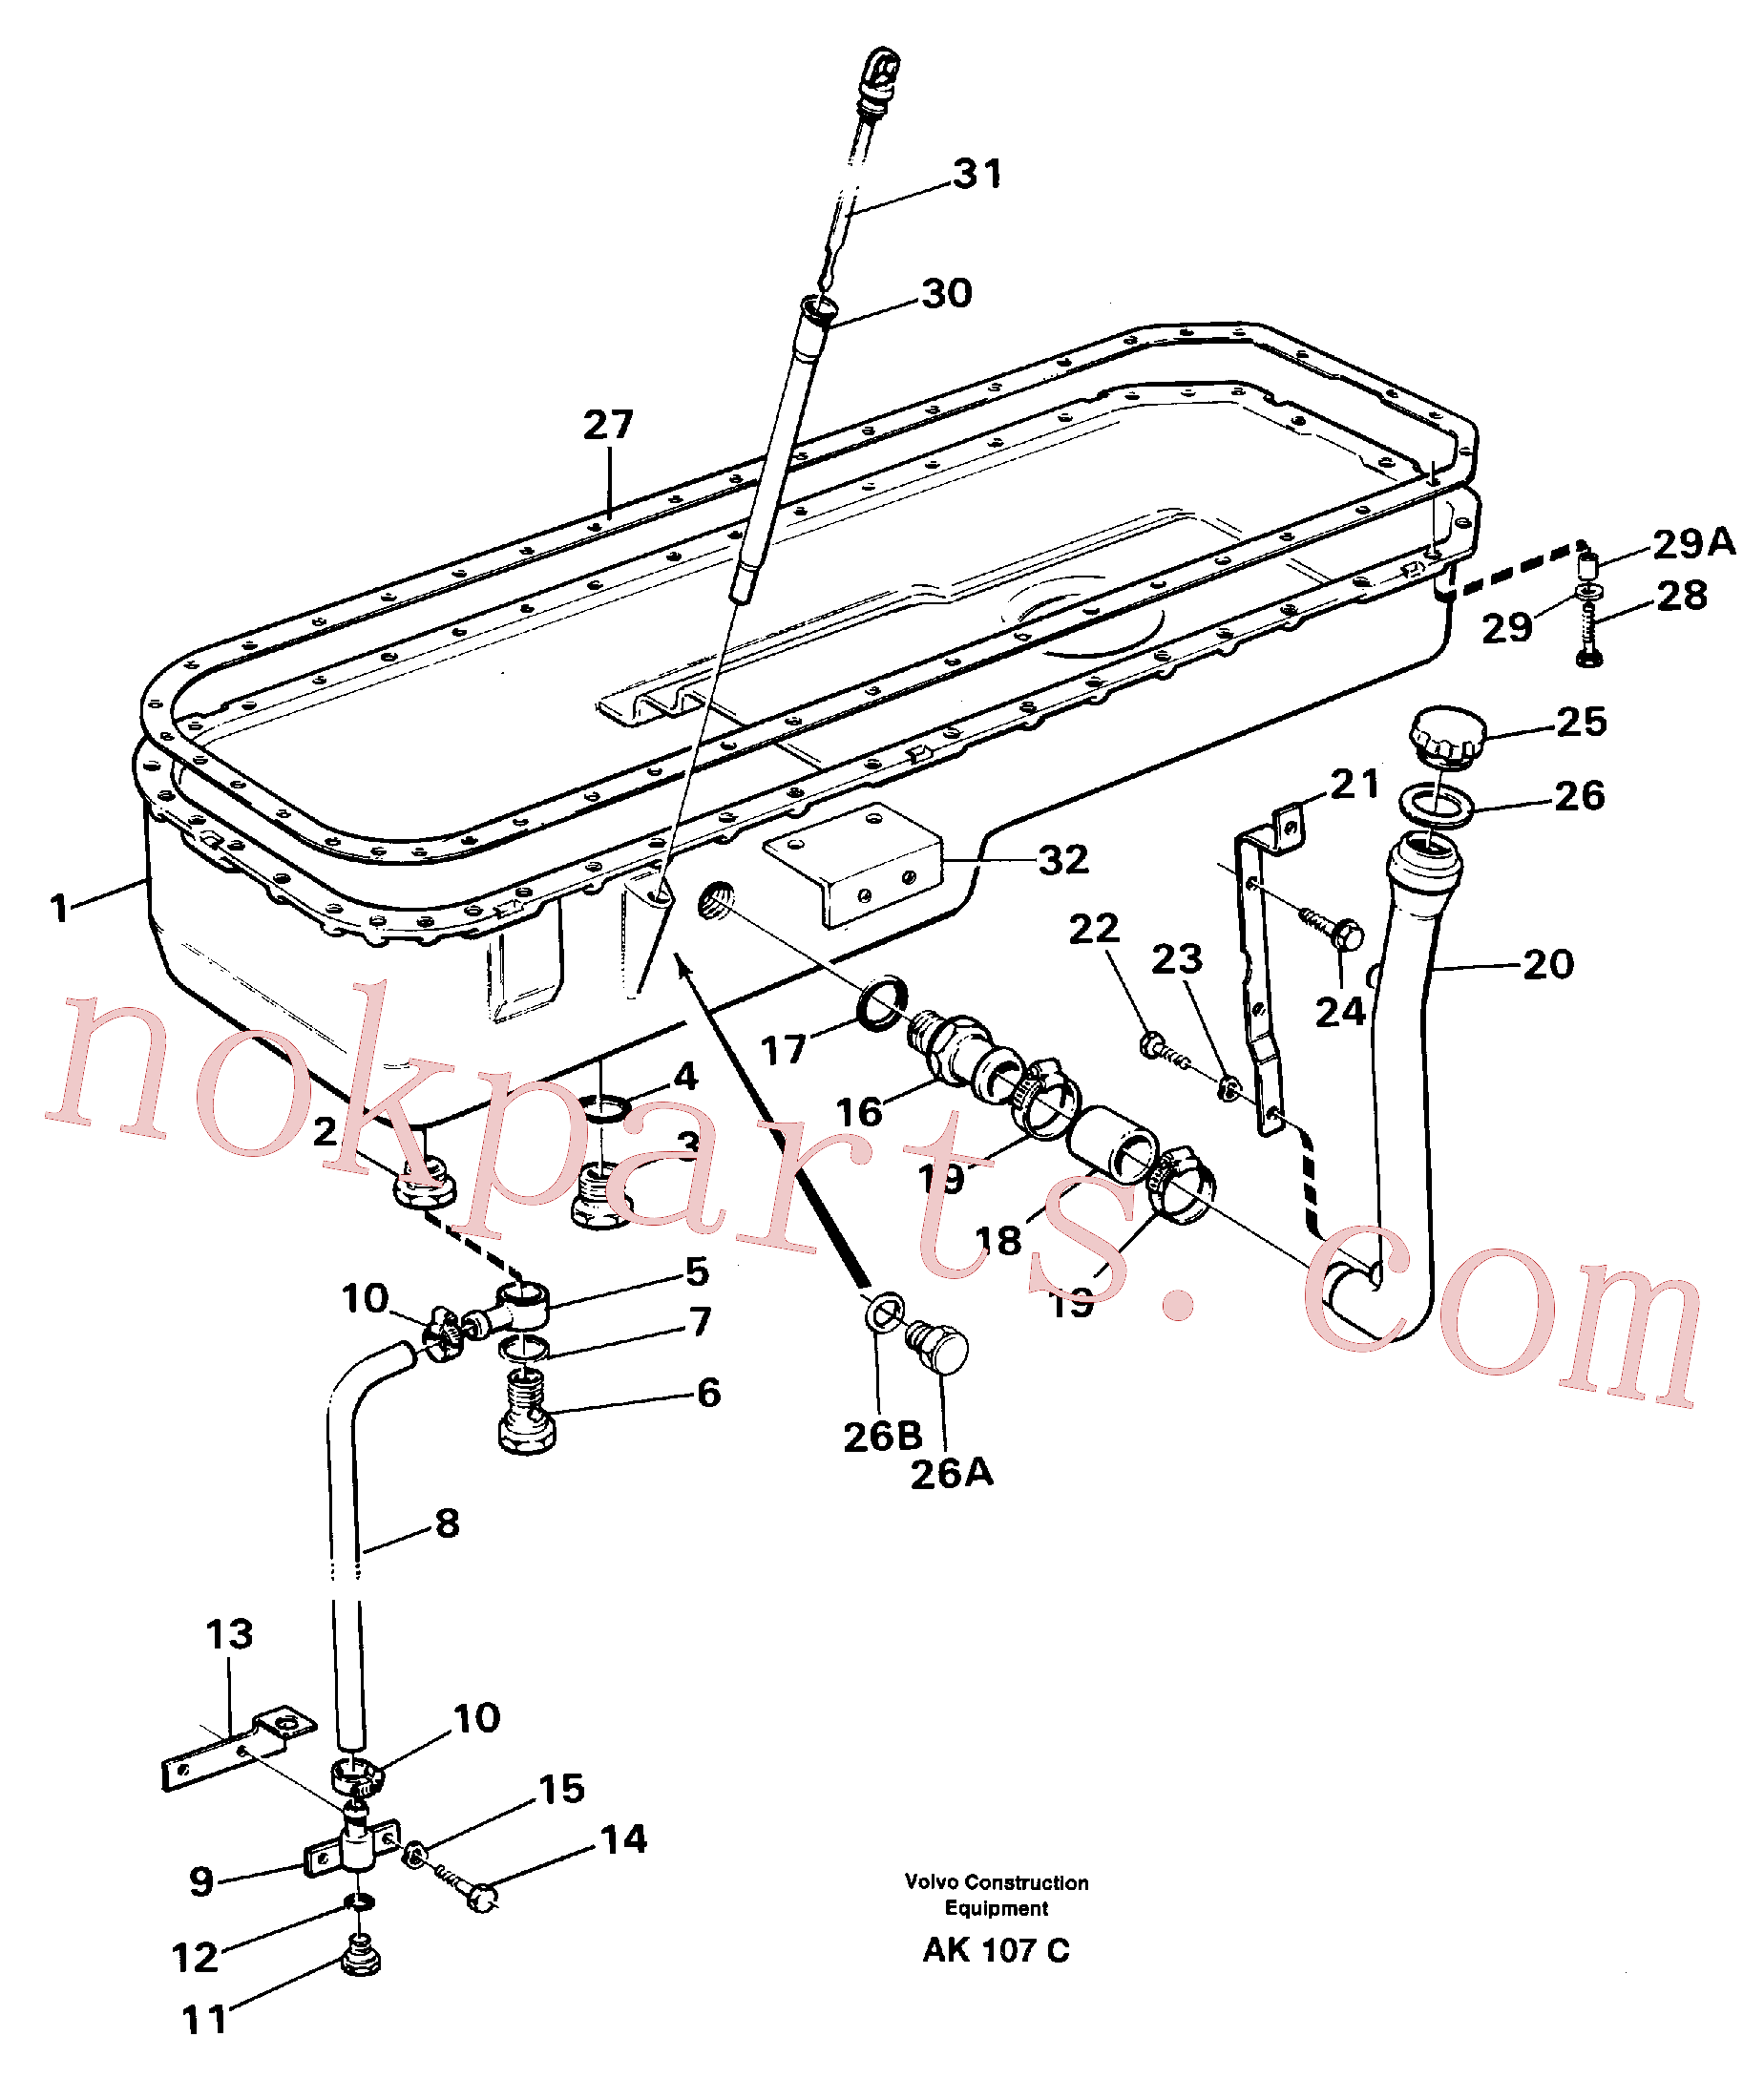 VOE925064 for Volvo Oil sump(AK107C assembly)